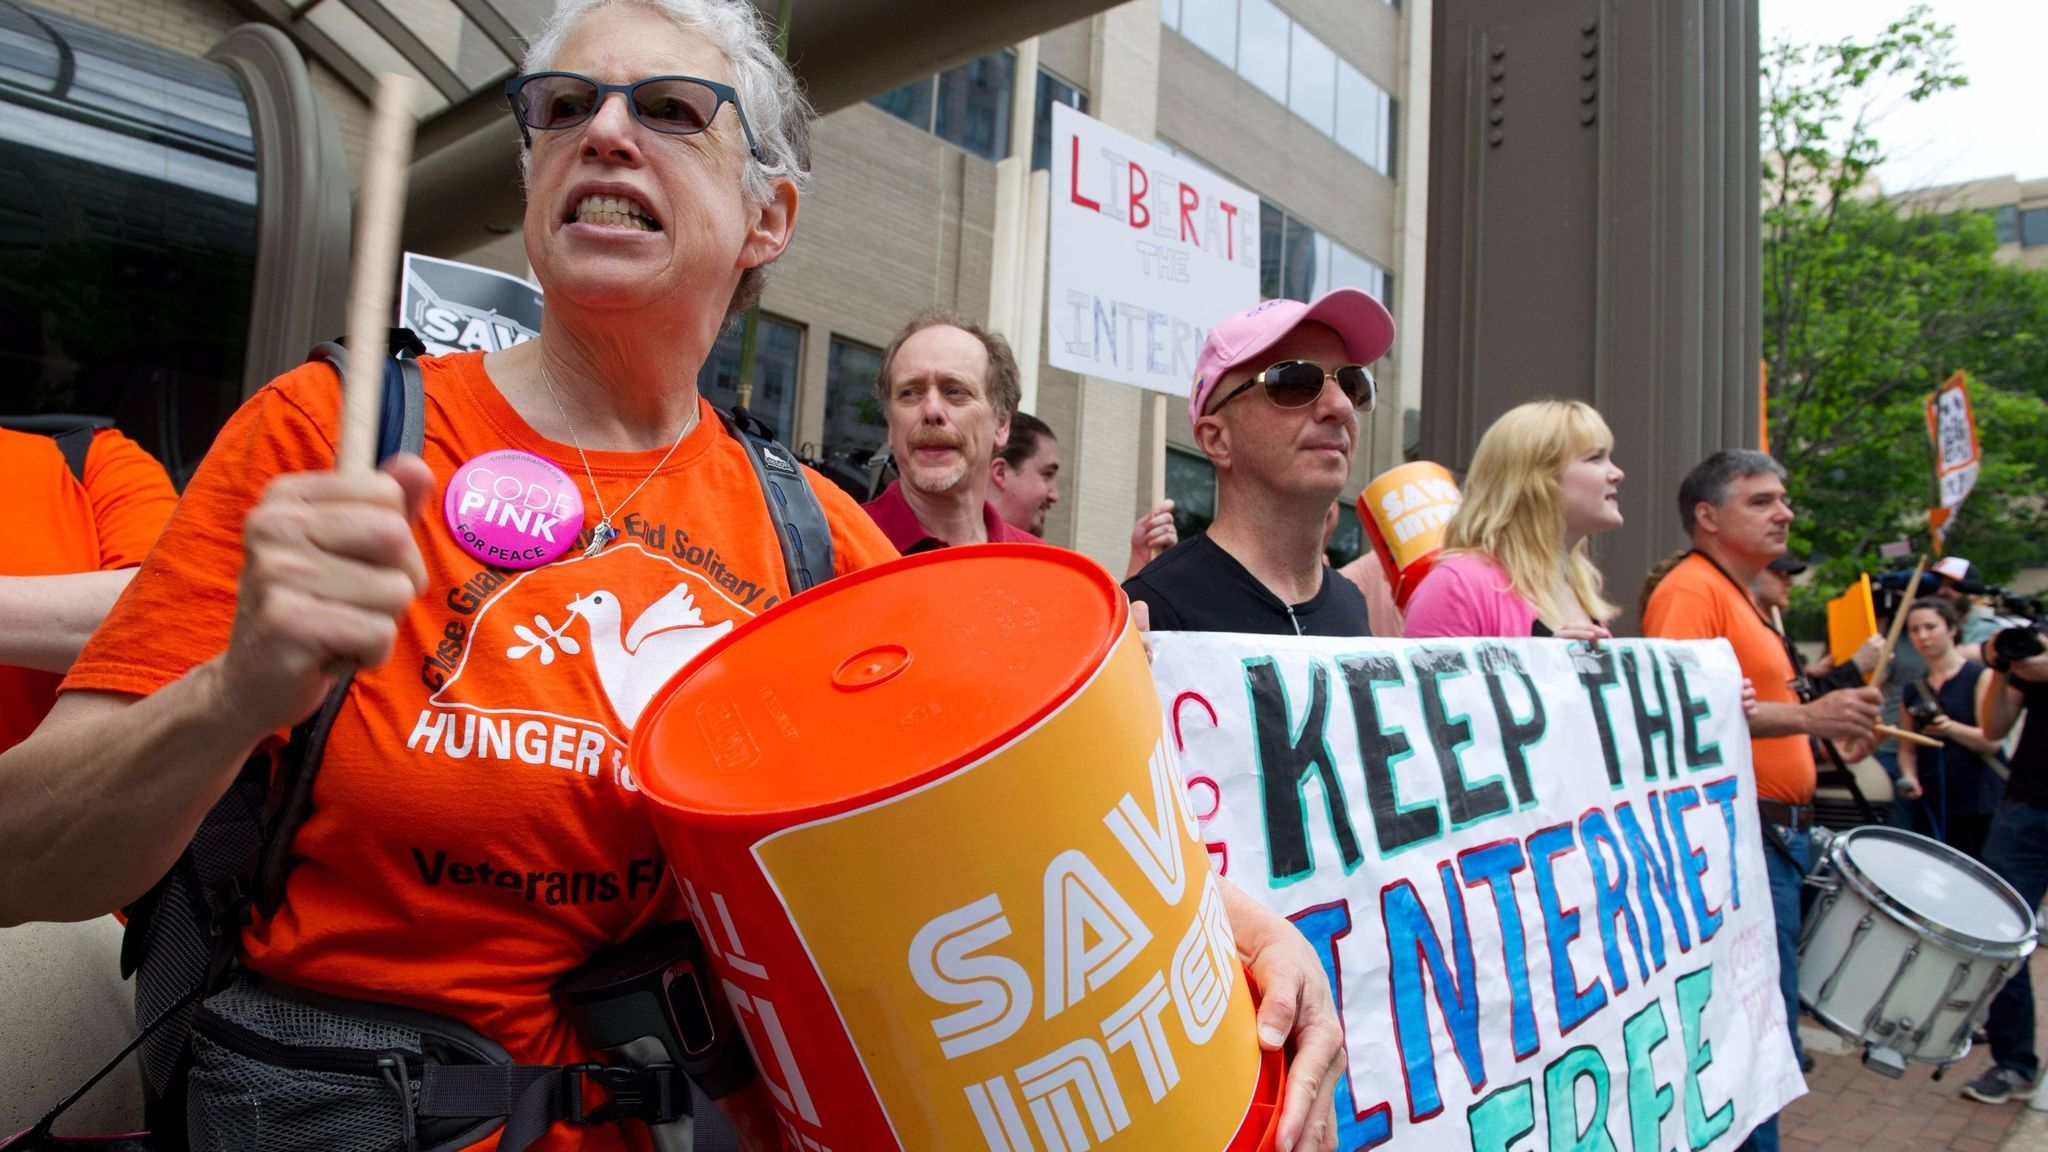 Protesters hold a rally to support net neutrality outside the Federal Communications Commission's headquarters in Washington, D.C., on May 15, 2014.